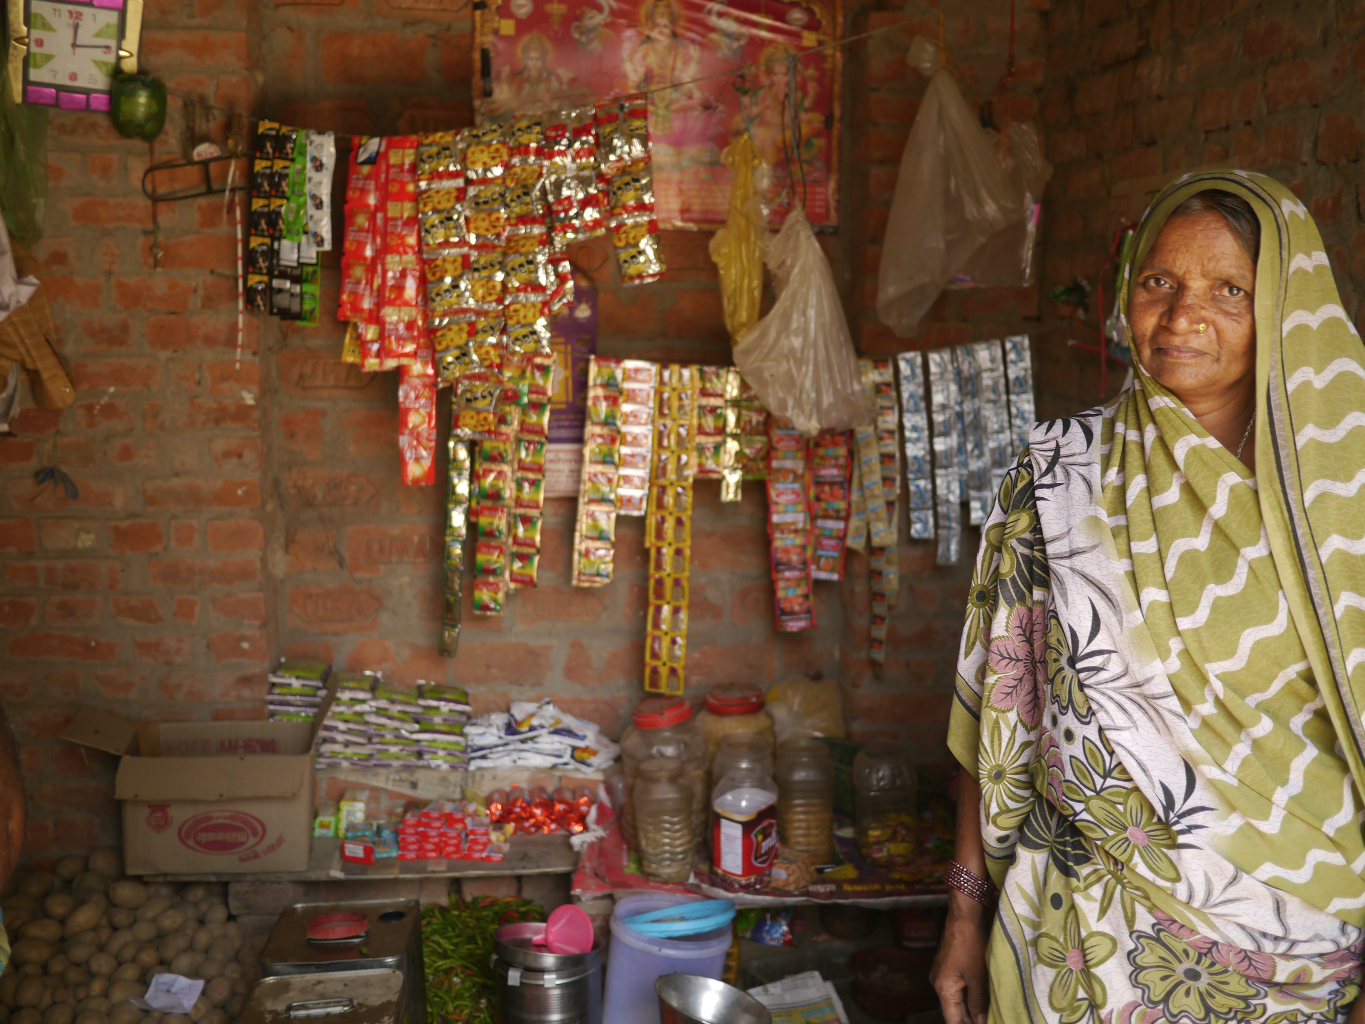 A woman shows off her wares. This single room serves as living and workspace for her and her family and now is also used to secure the tablets.